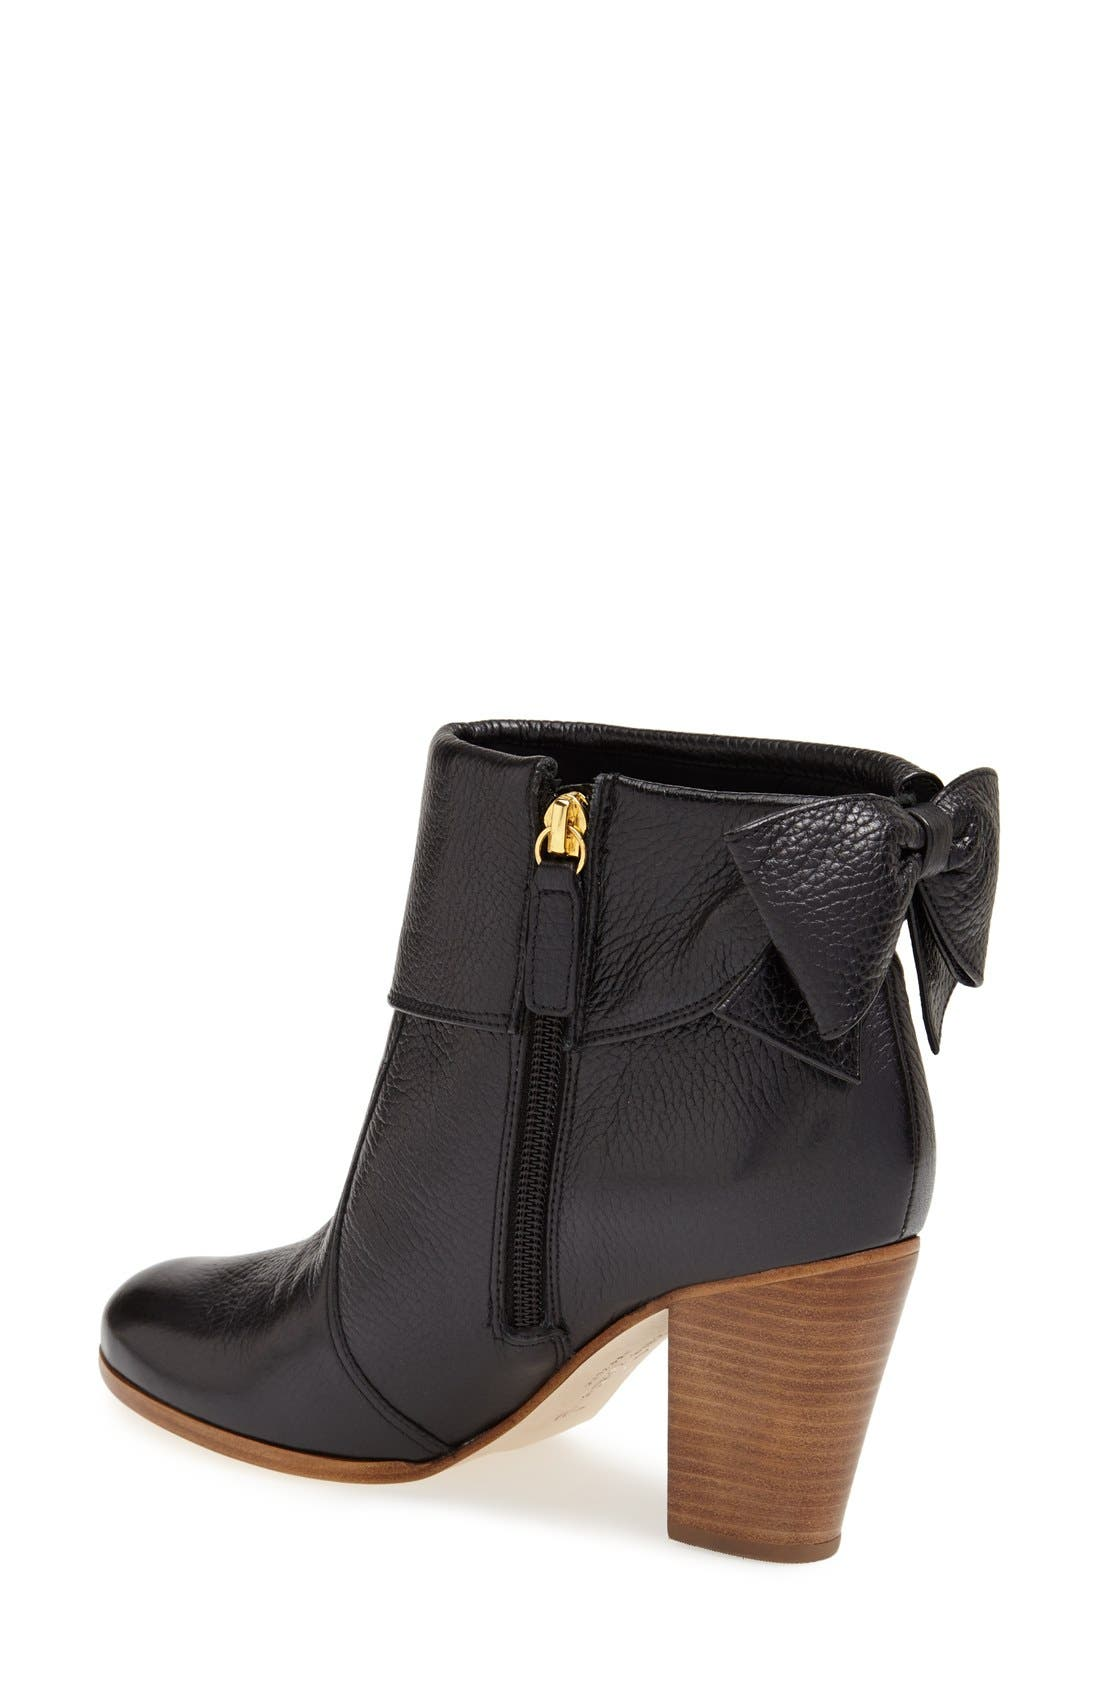 Alternate Image 2  - kate spade new york 'lanise' leather boot (Women)